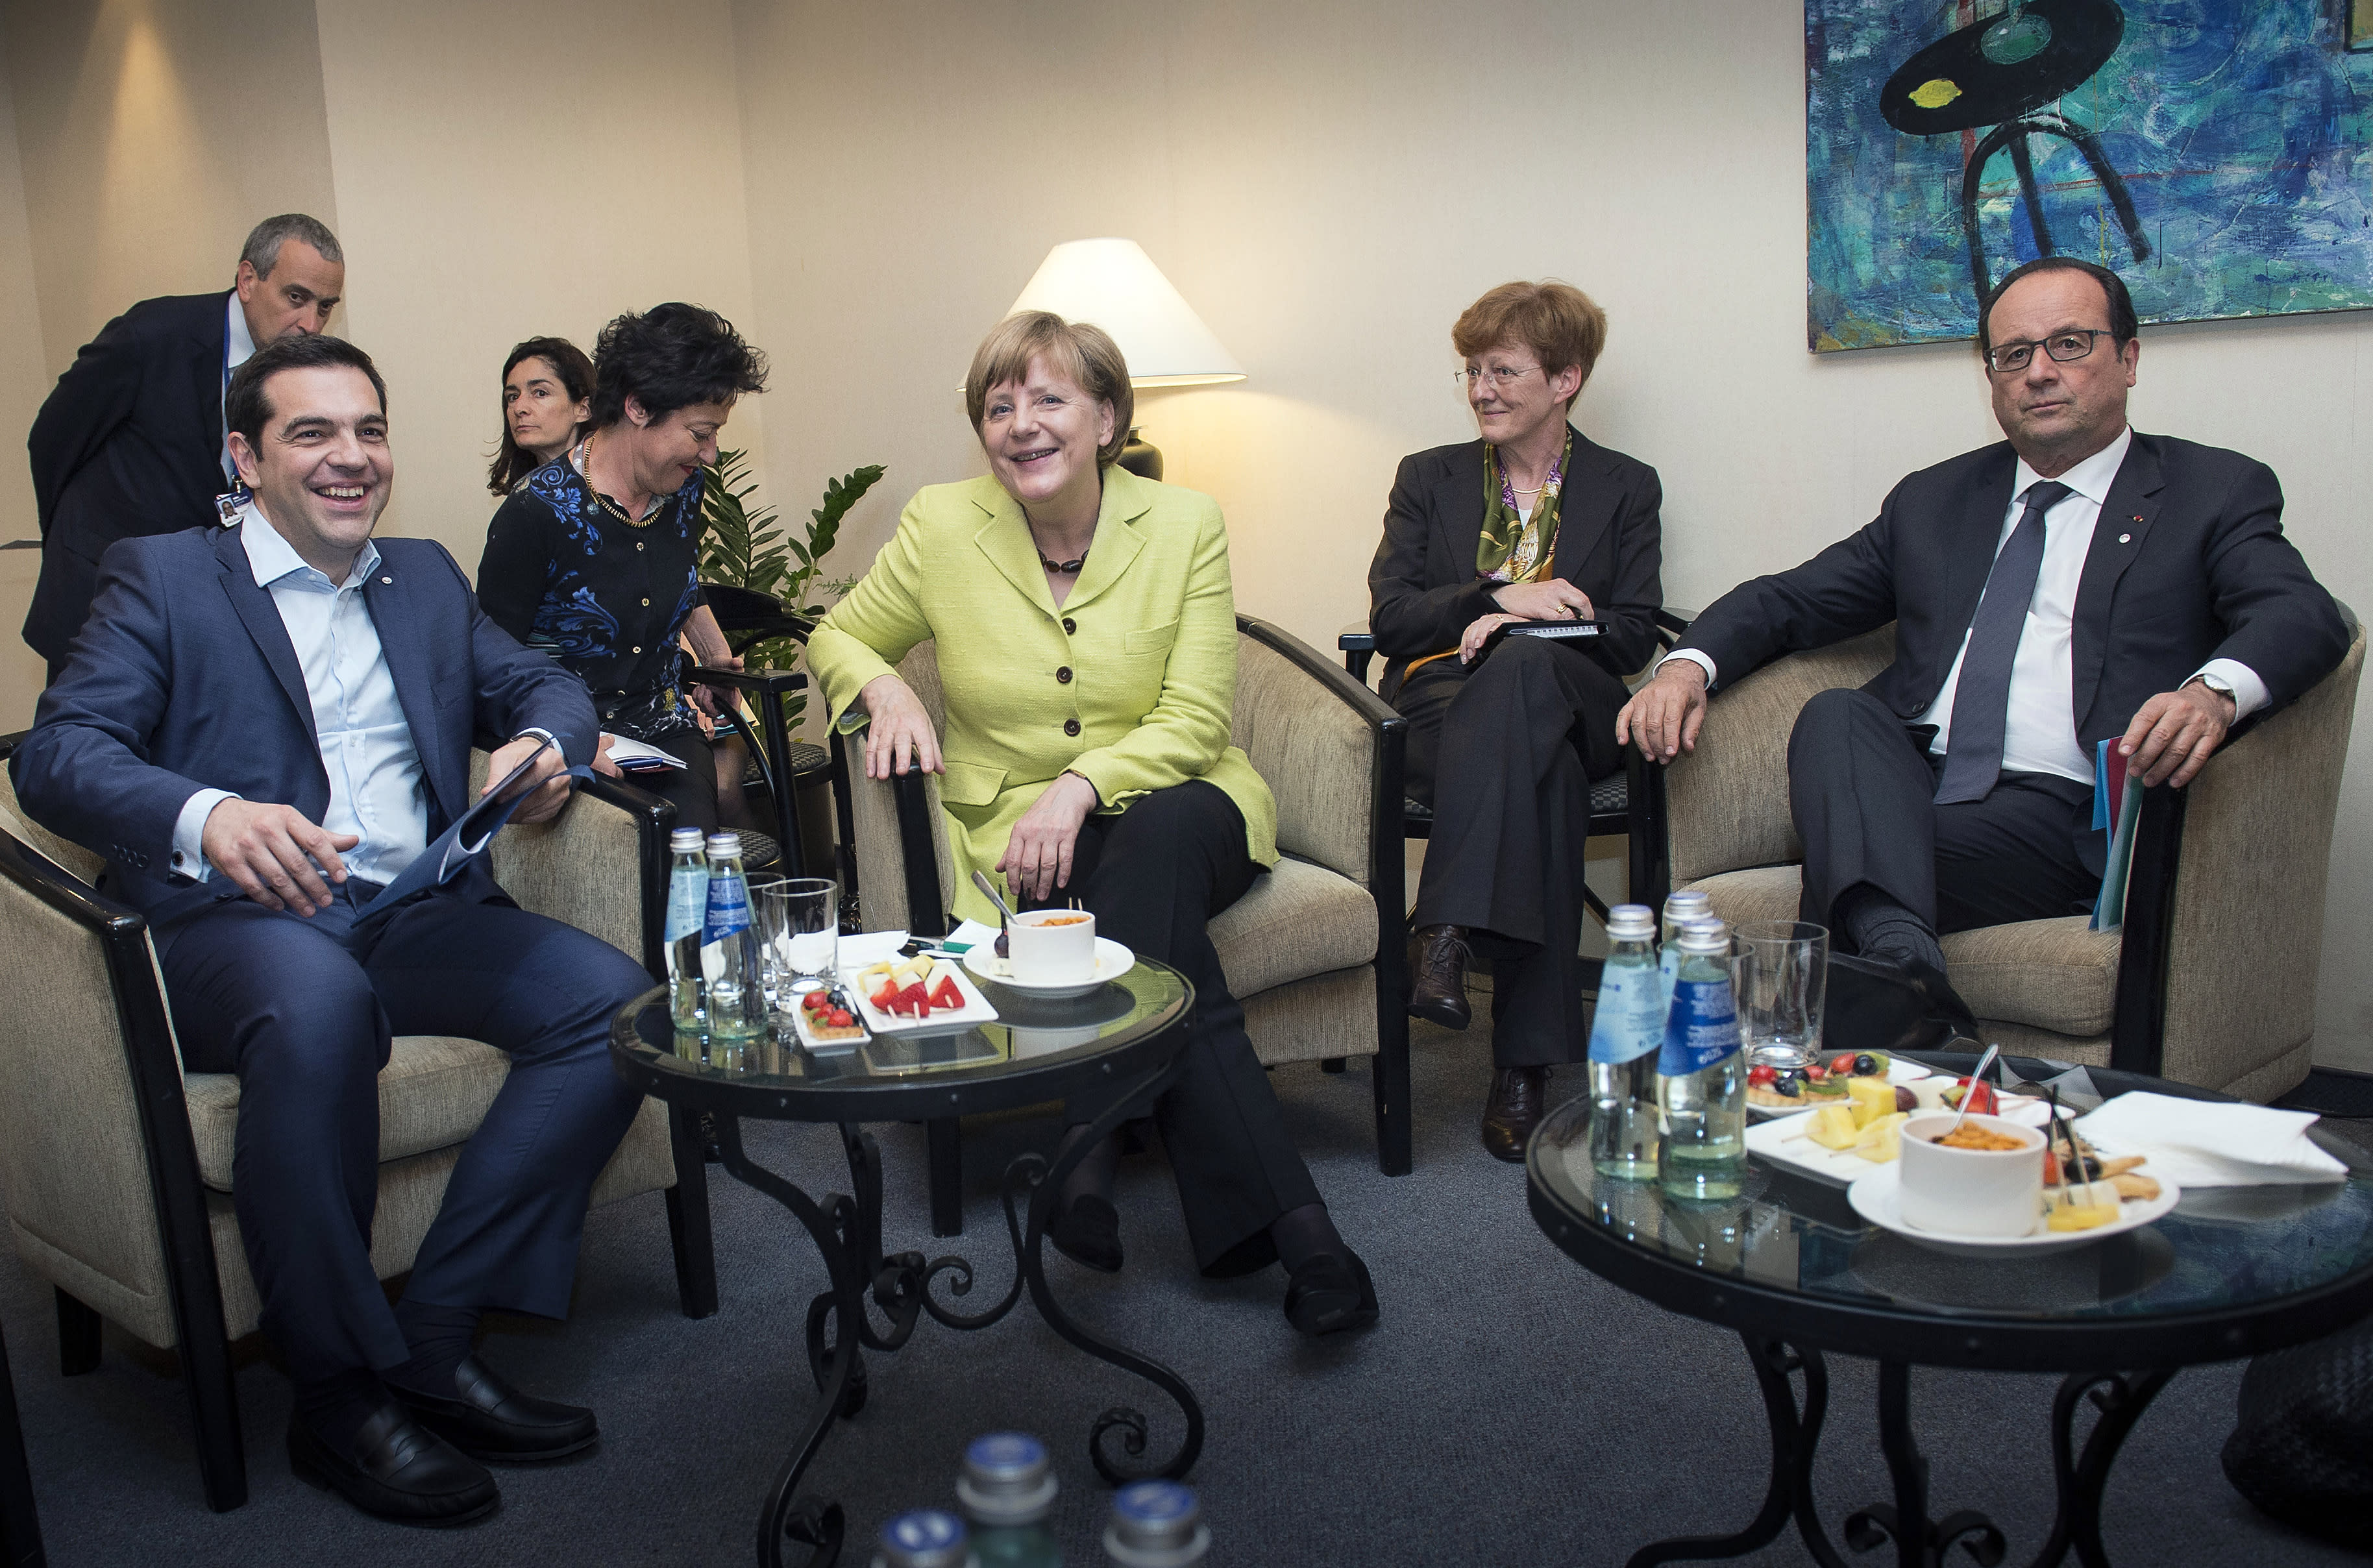 Merkel says 'a whole lot left' to do on Greece bailout talks